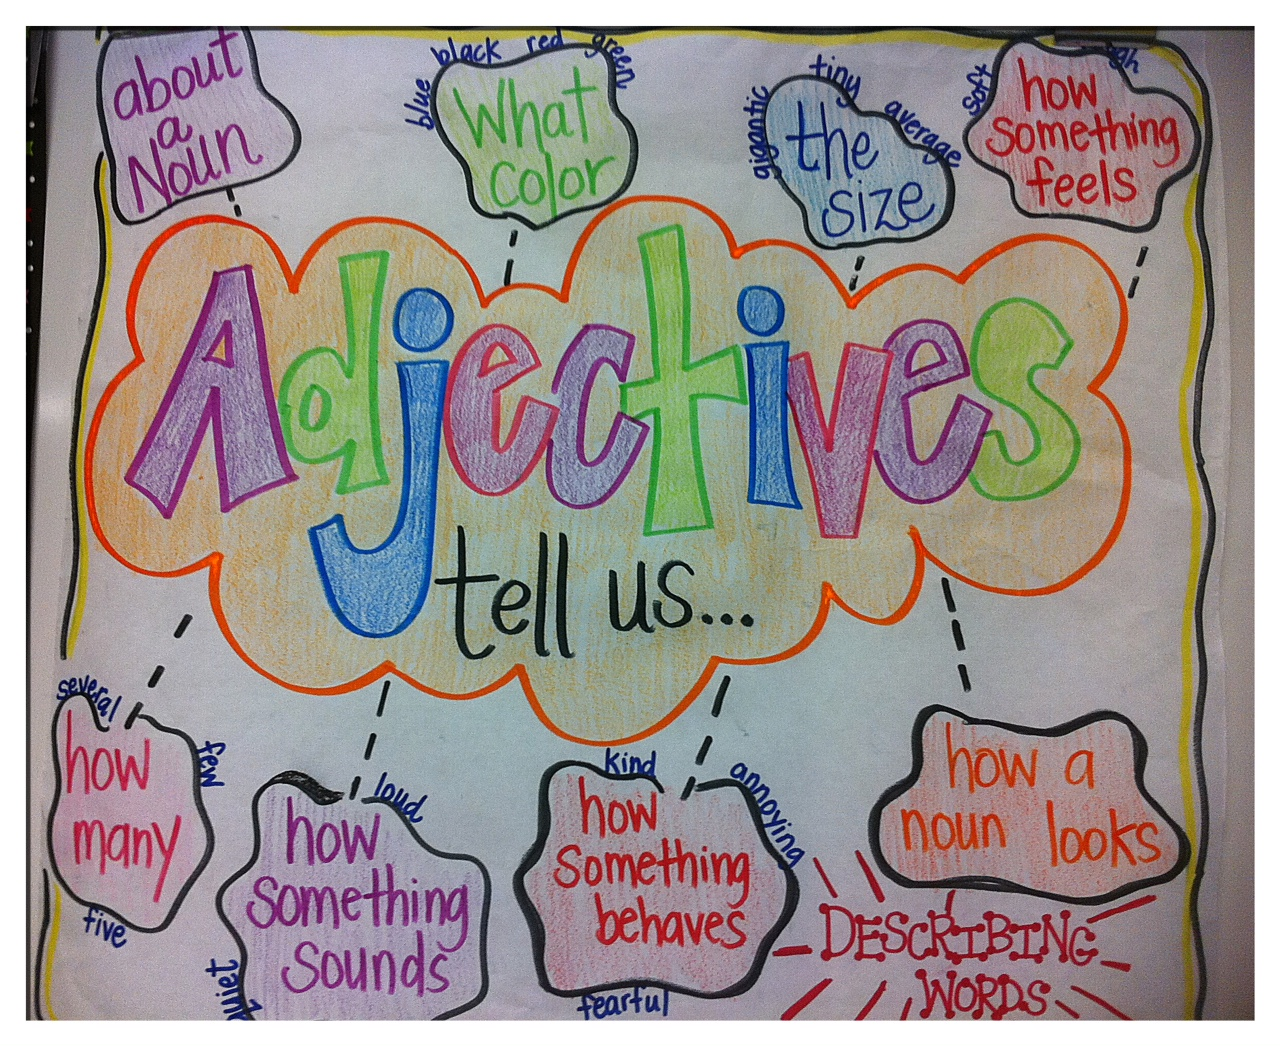 Adjectives are words that describe a noun